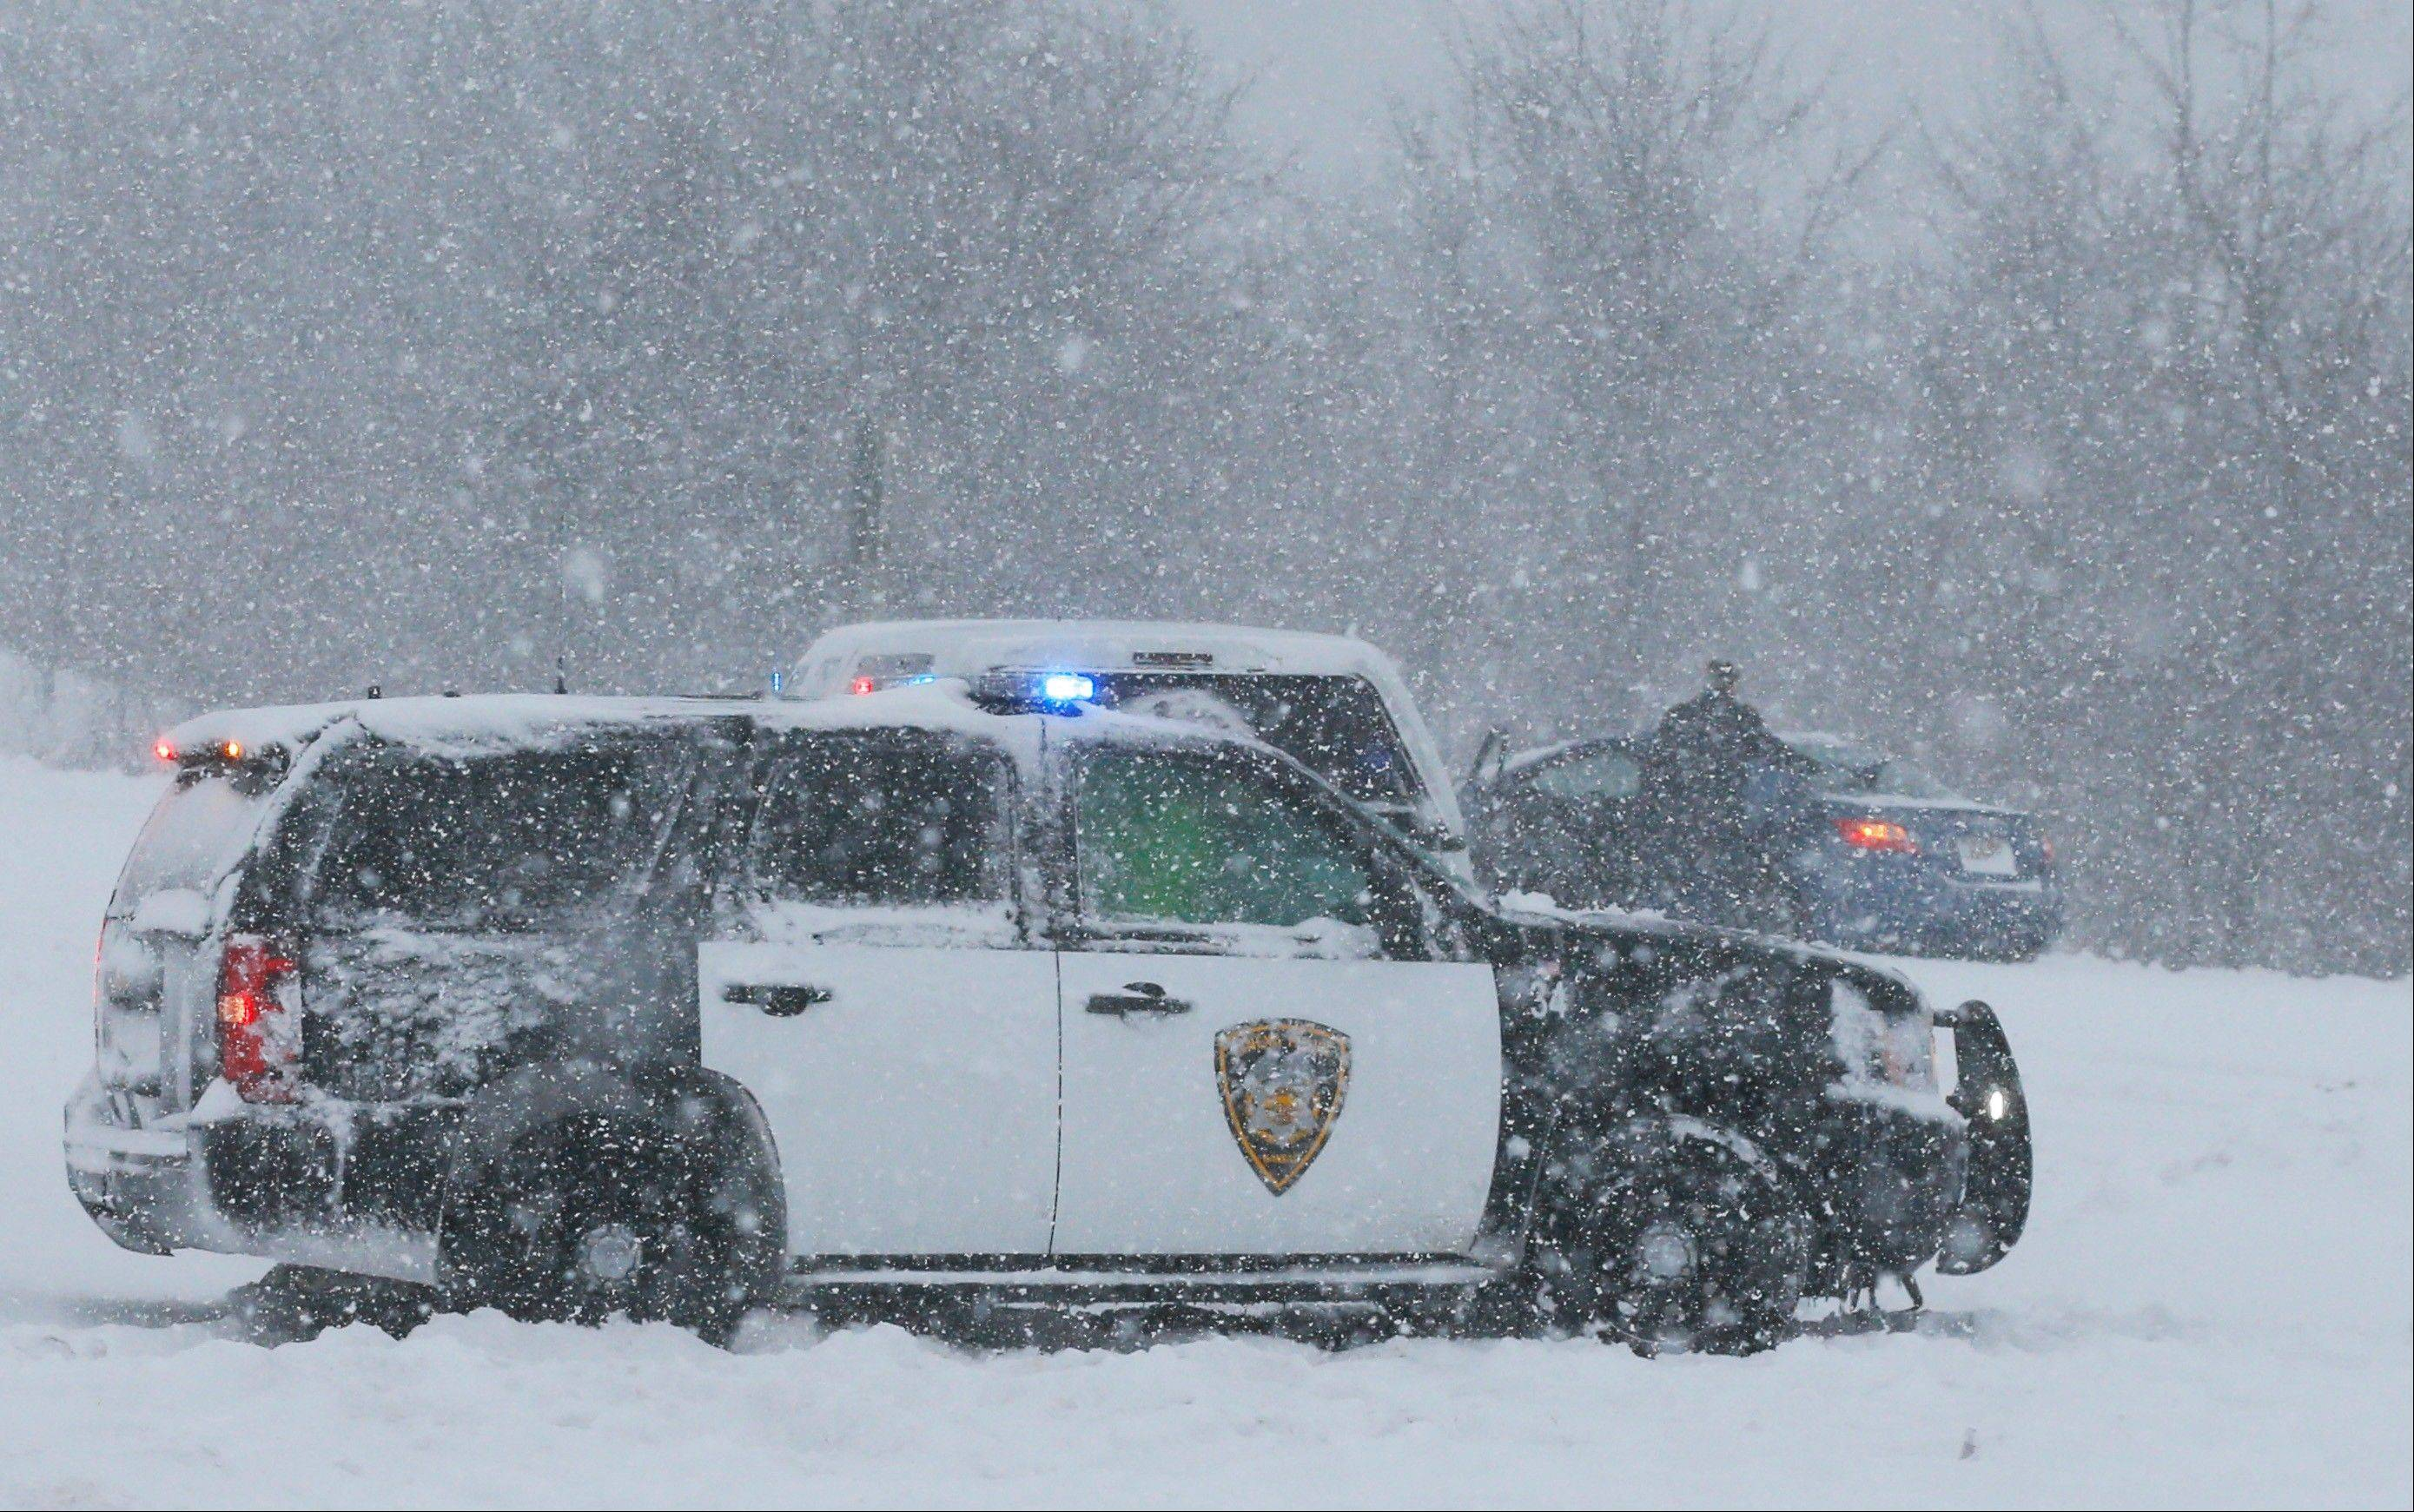 A Lenexa Police vehicle stops to aid motorists stuck on a ramp to I-35 in Lenexa, Kan., Thursday, Feb. 21, 2013. The Kansas Turnpike Authority encouraged drivers to stay off the turnpike entirely; it runs from Oklahoma to Kansas City. There was virtually zero visibility on the turnpike early Thursday. And I-70 and other major highways in Kansas were snowpacked and icy, according to the Kansas Department of Transportation. Kansas Gov. Sam Brownback closed executive offices, except for essential personnel. He urged residents to have an extra cup of coffee, get out a board game and play with their children.